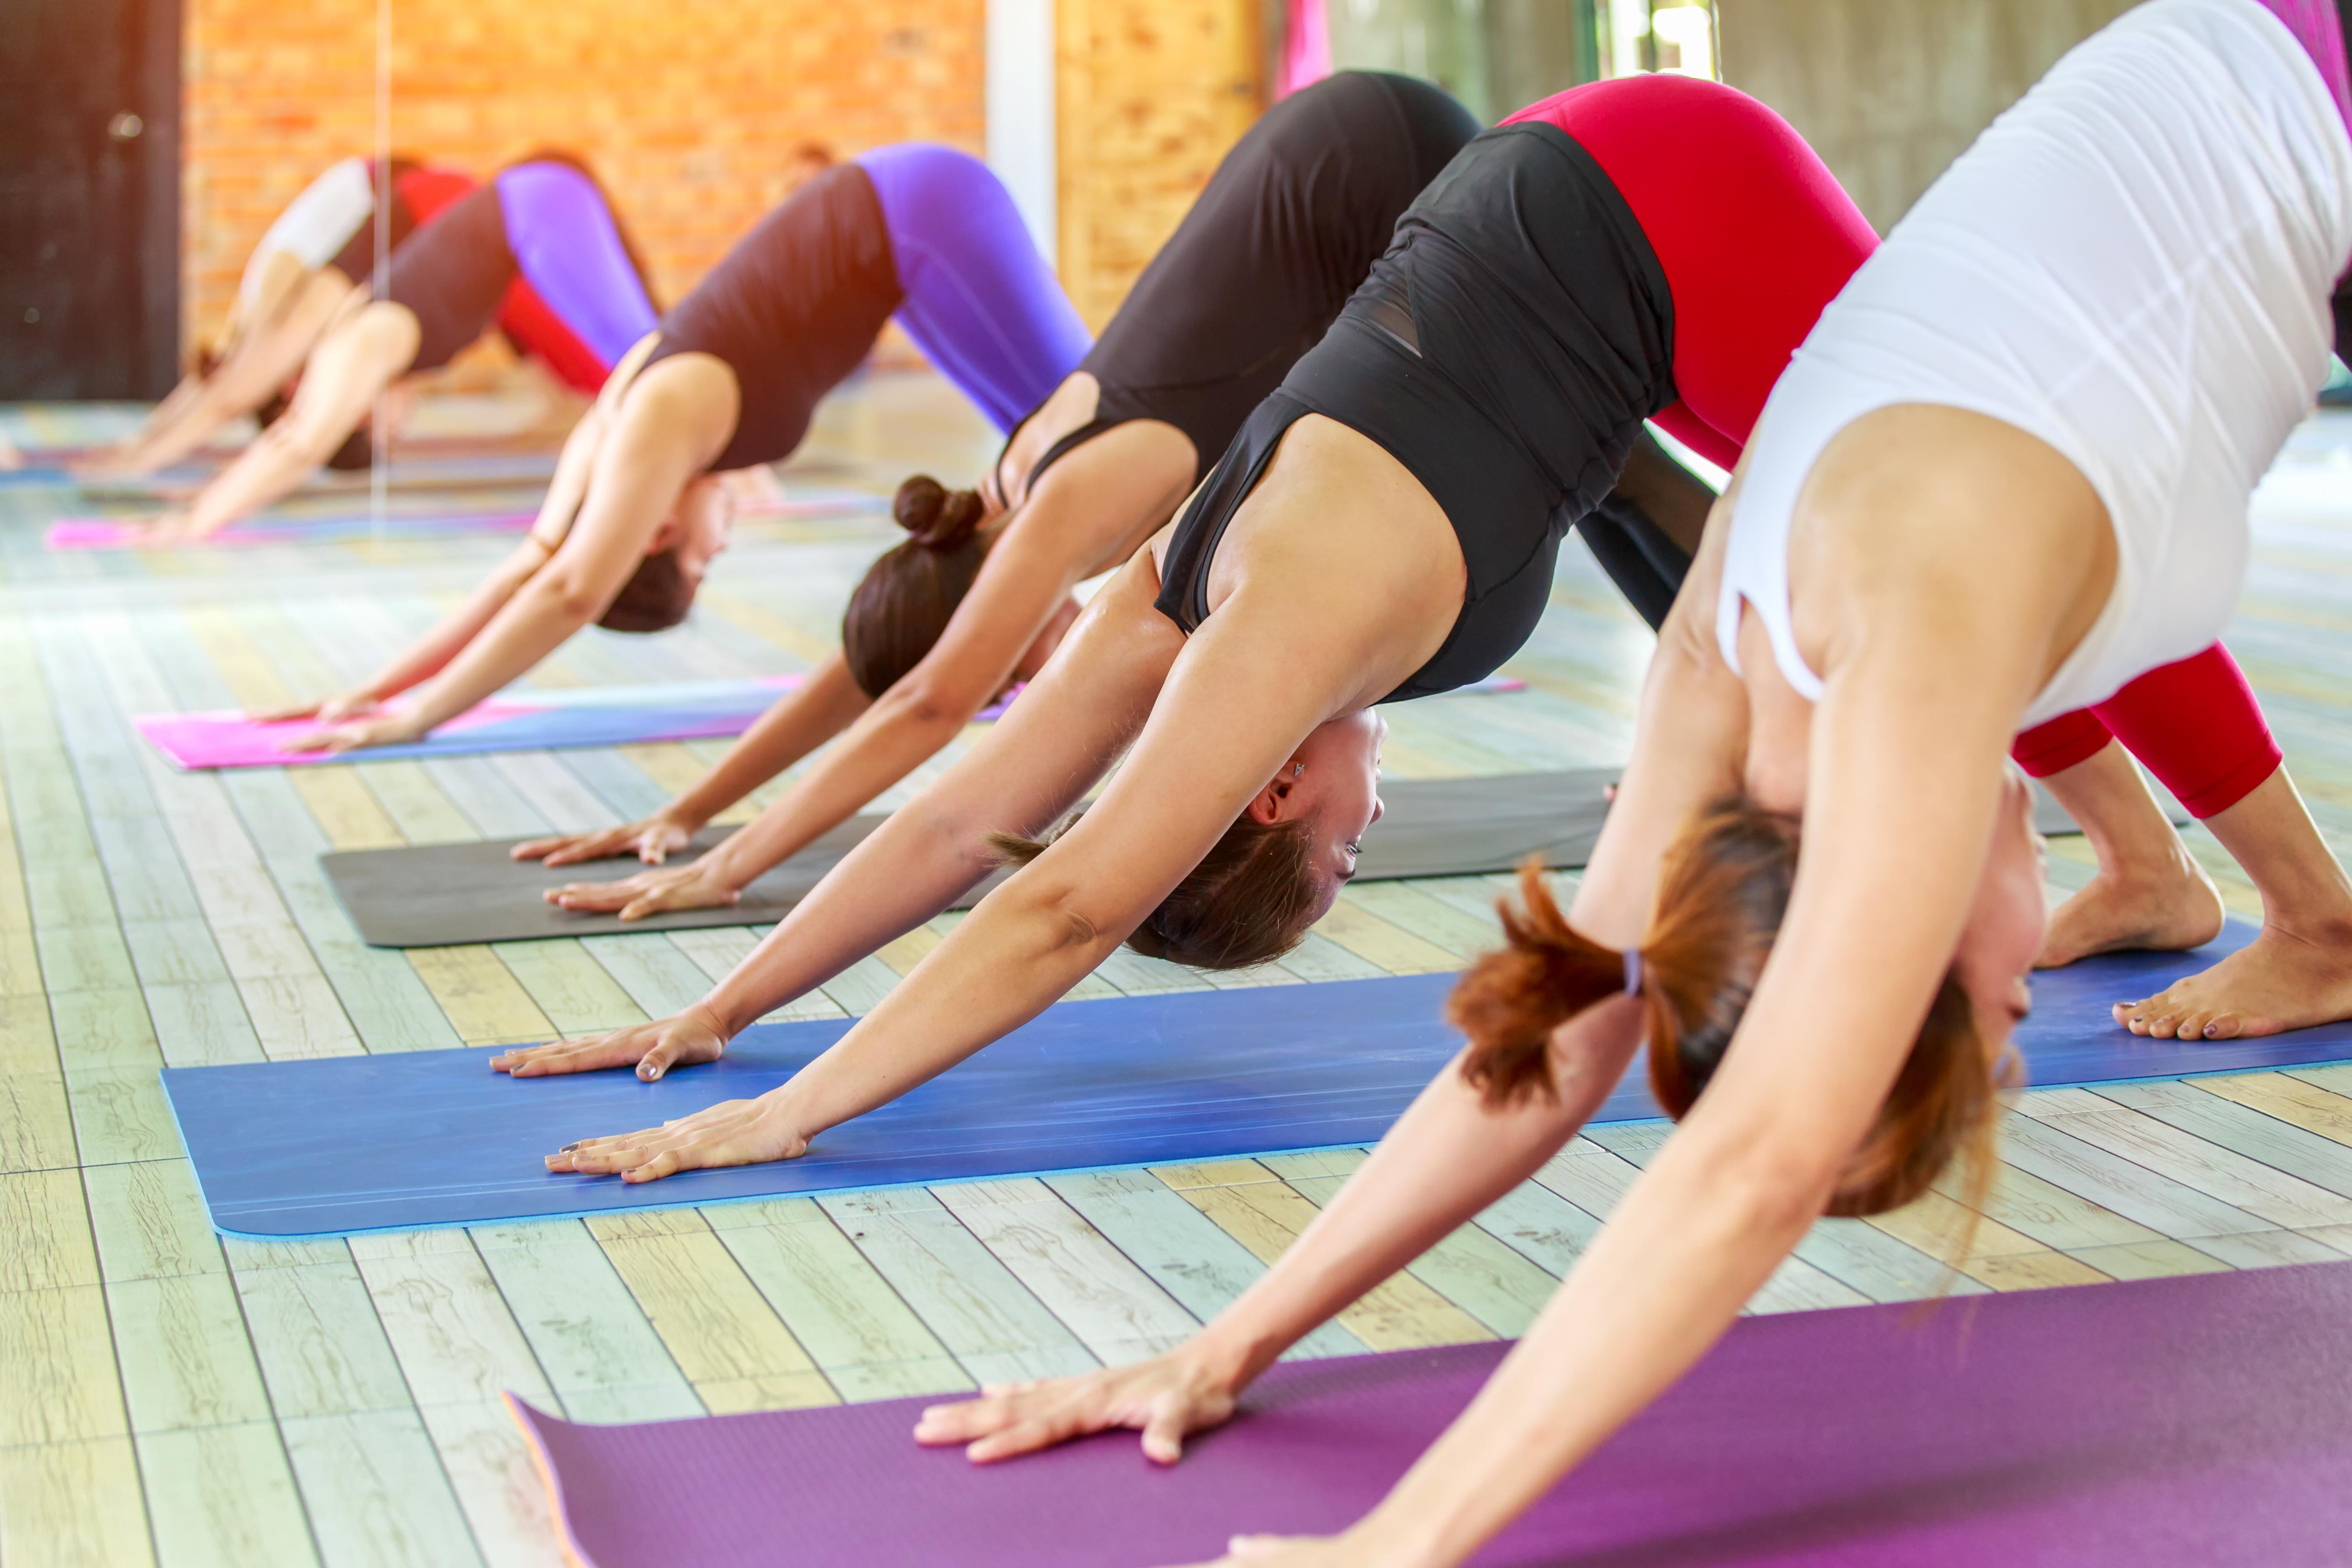 Touching in yoga is touchy indeed - and it should be